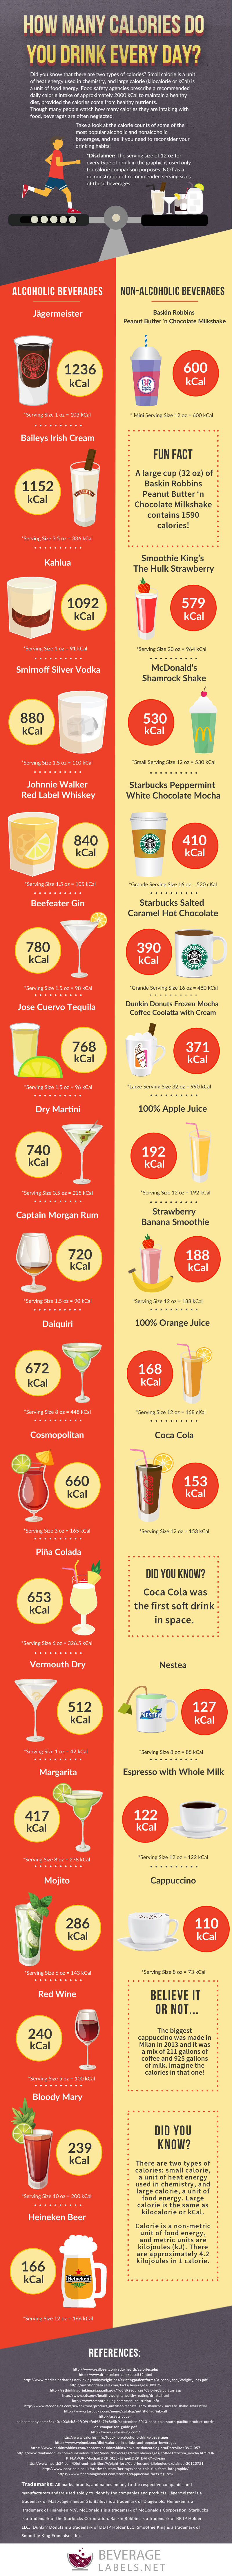 calories-in-beverages-infographic